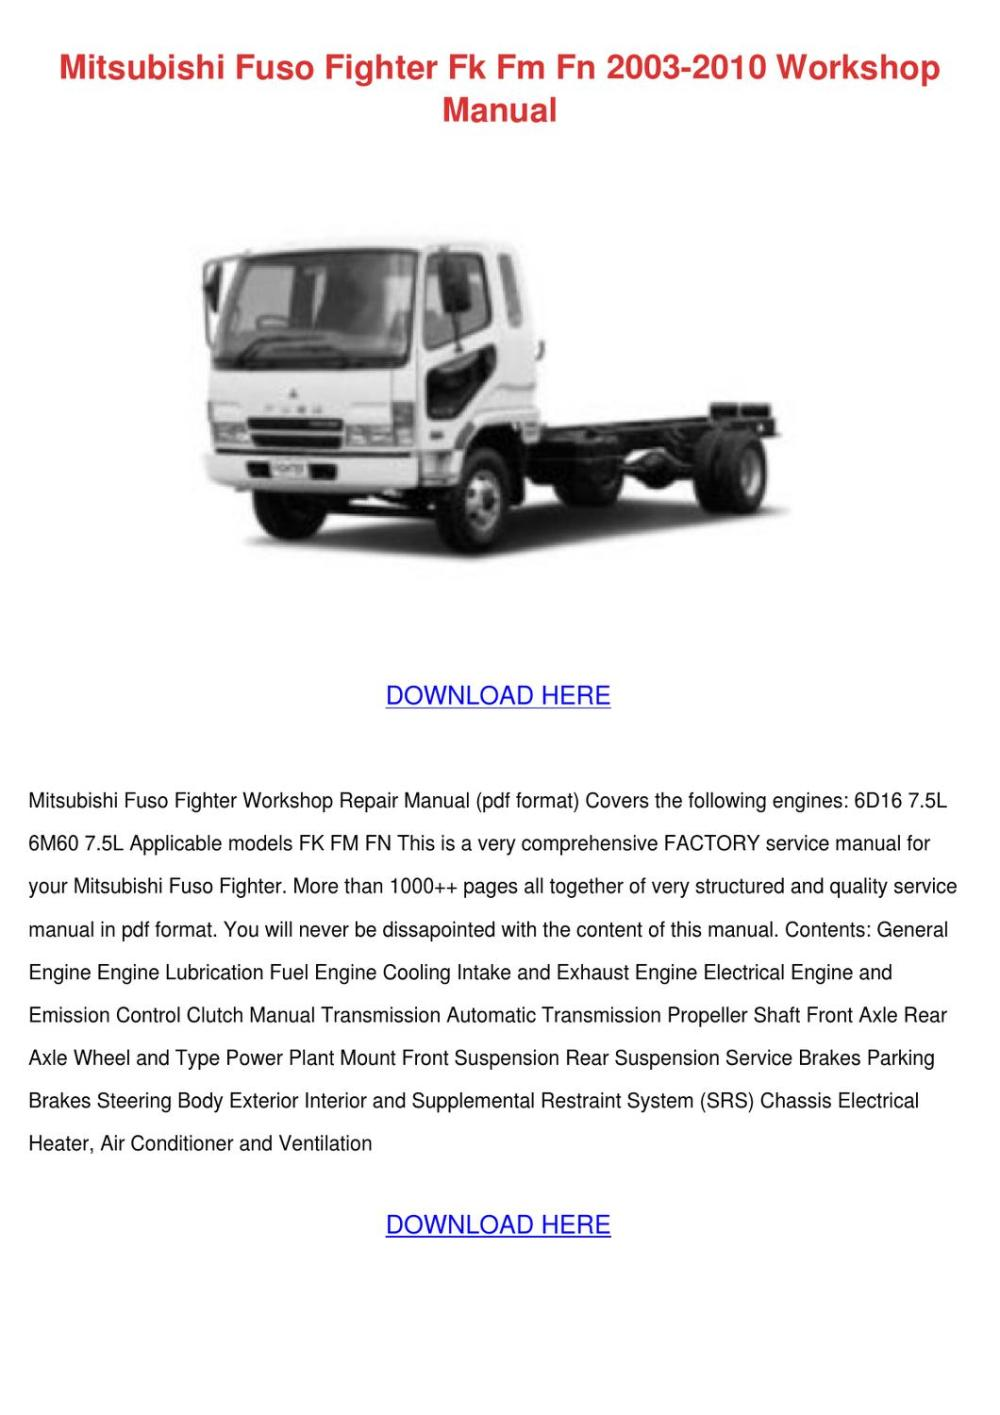 medium resolution of wiring diagram mitsubishi canter wiring diagram fuse box source mitsubishi fuso fighter fk fm